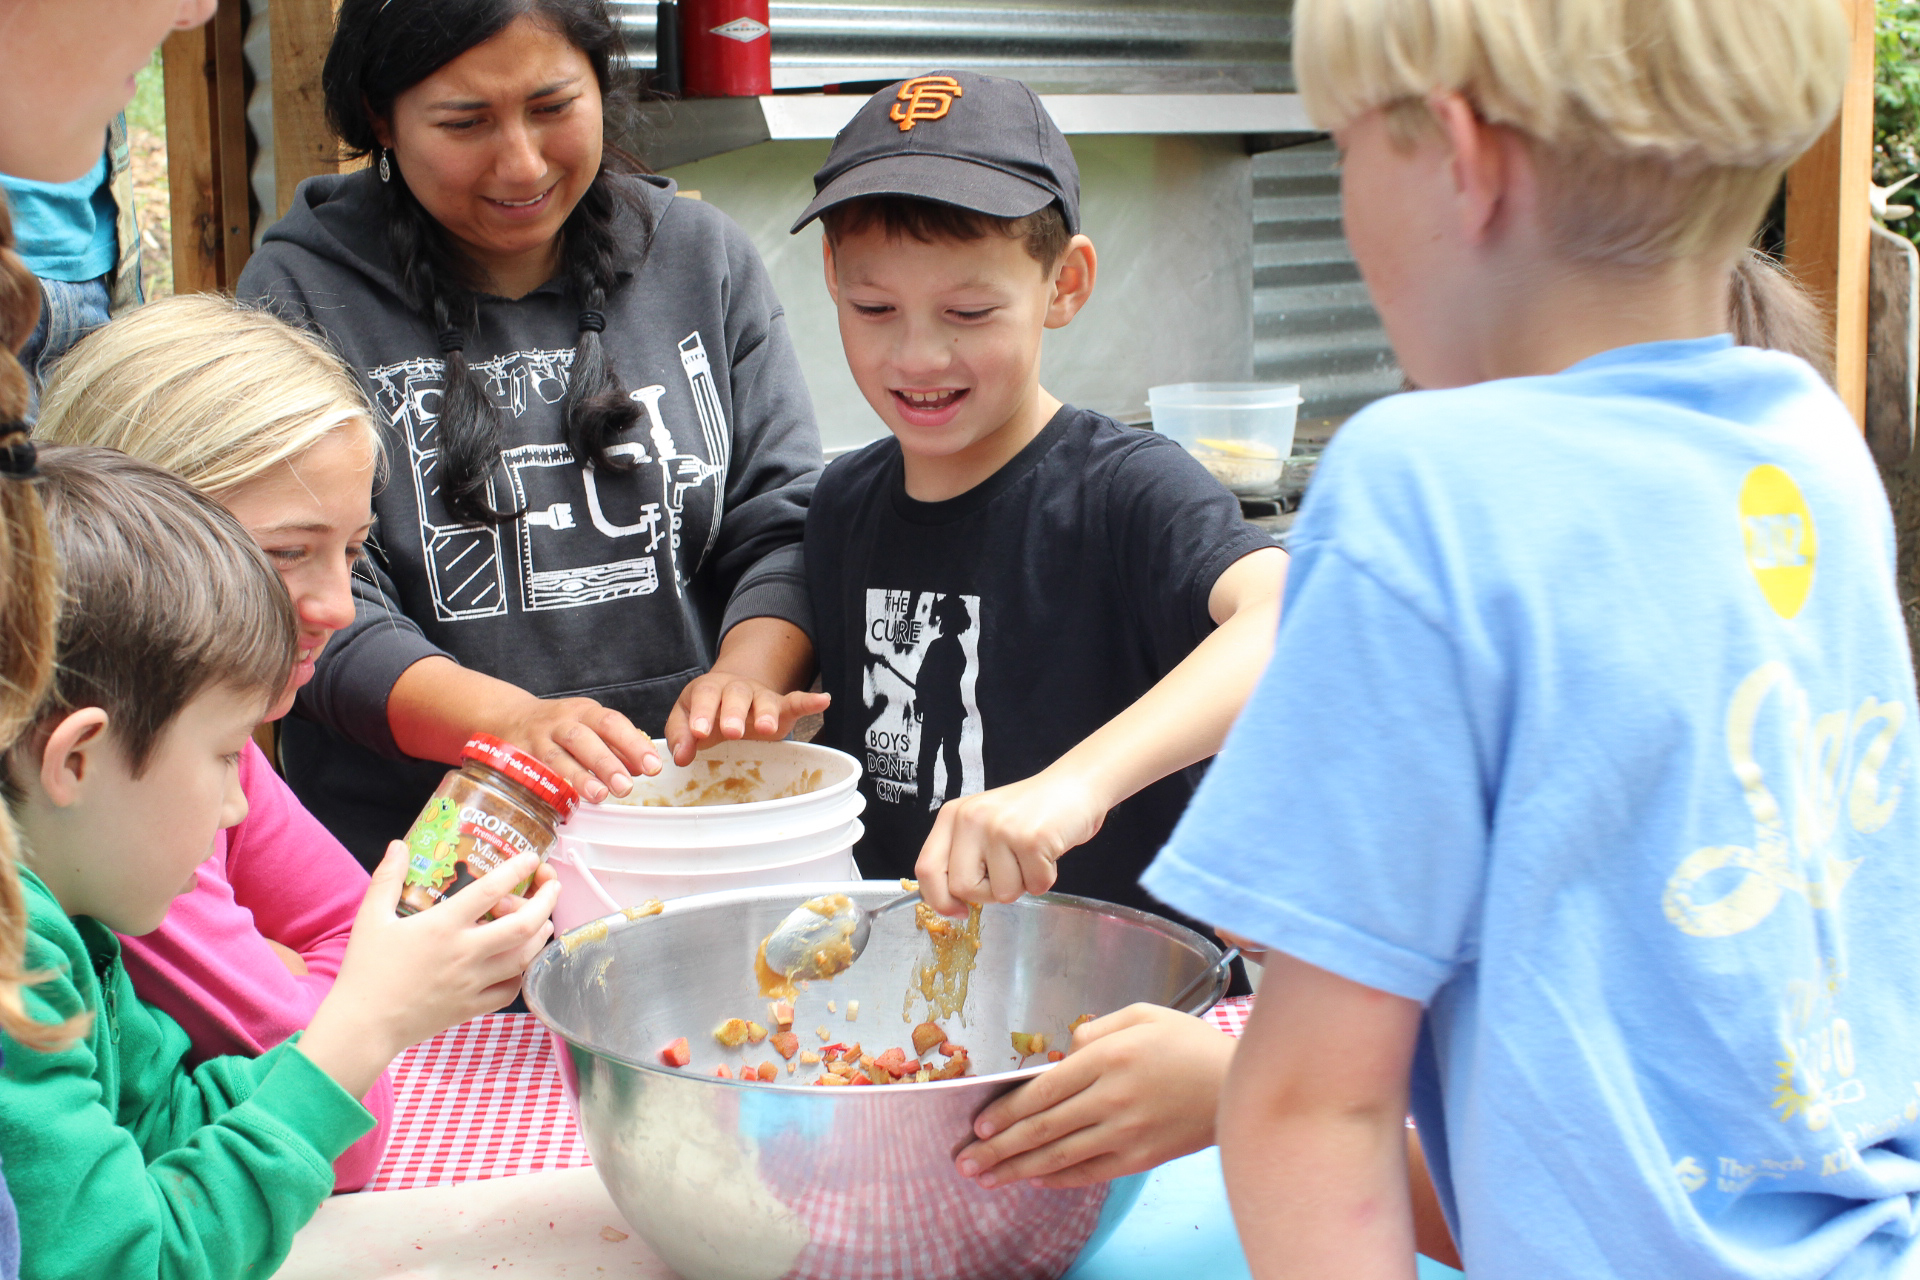 We use many mixing bowls and utensils during our farm to table cooking and baking sessions with school and community groups.